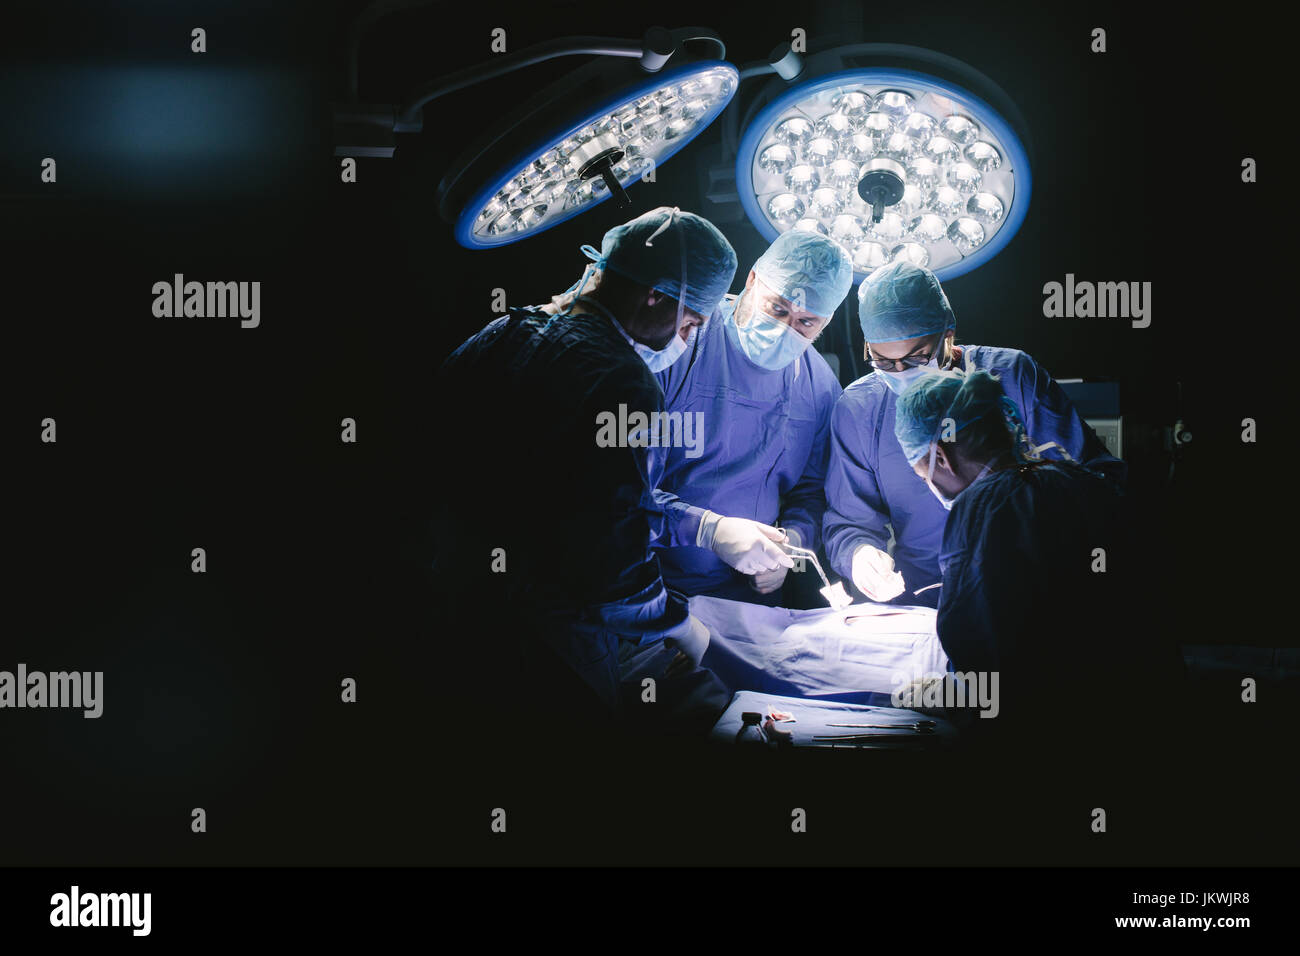 Group of surgeons in hospital operating theater. Medical team performing surgery in operation room. - Stock Image